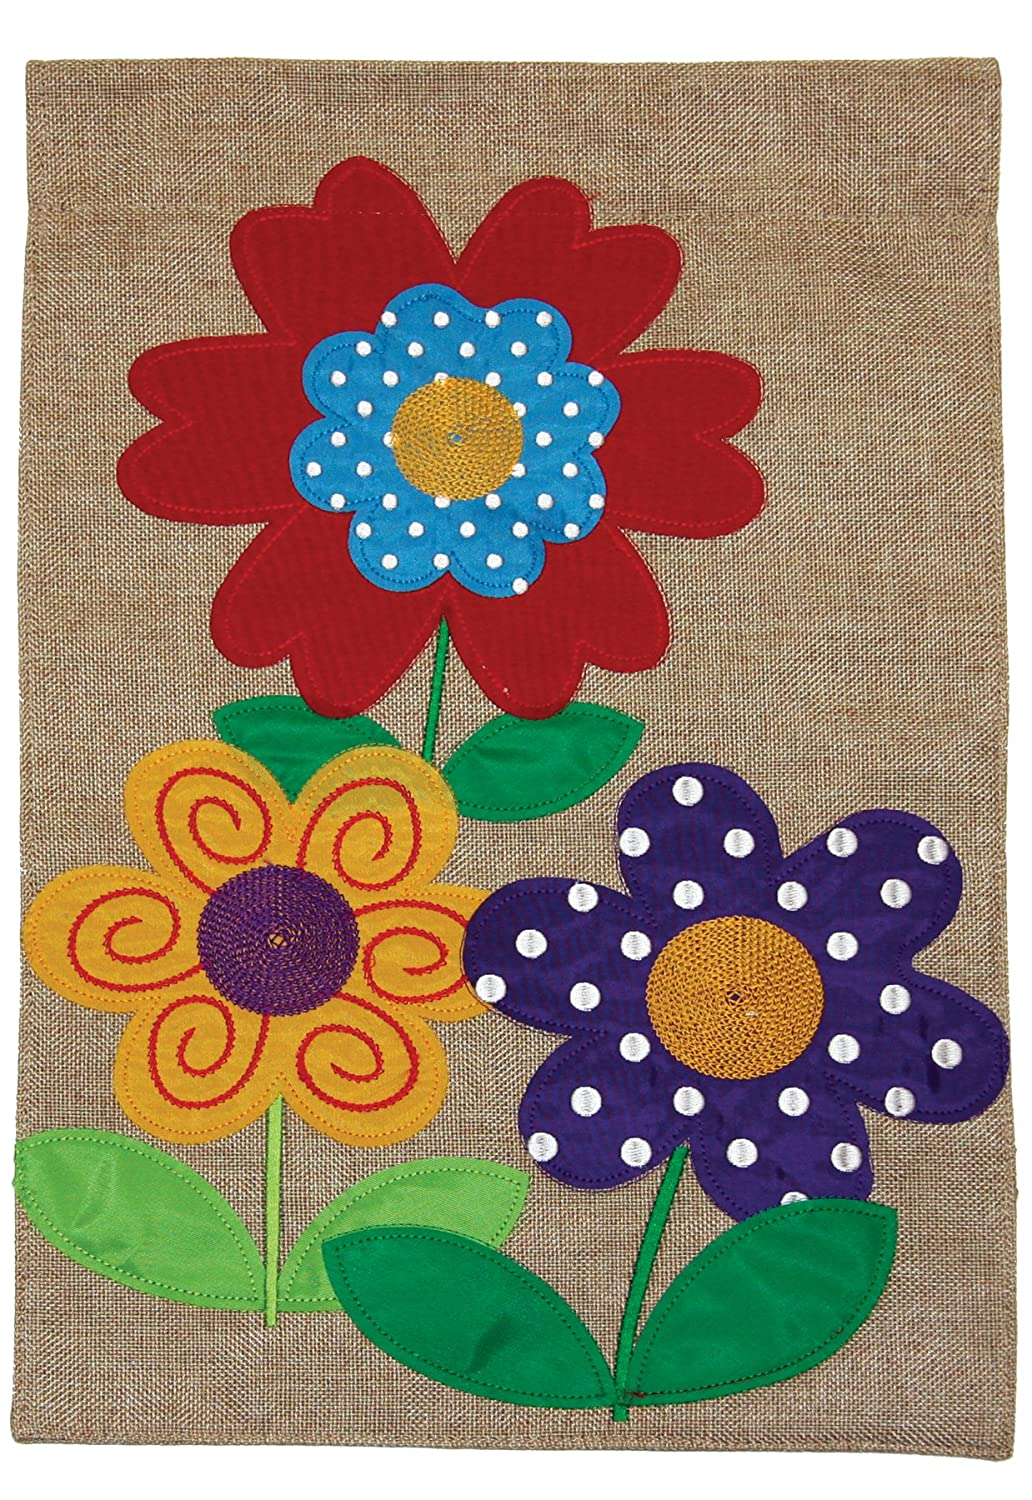 Toland Home Garden Polkadot Flowers 12 x 18 Inch Decorative Colorful Floral Spring Burlap Flag